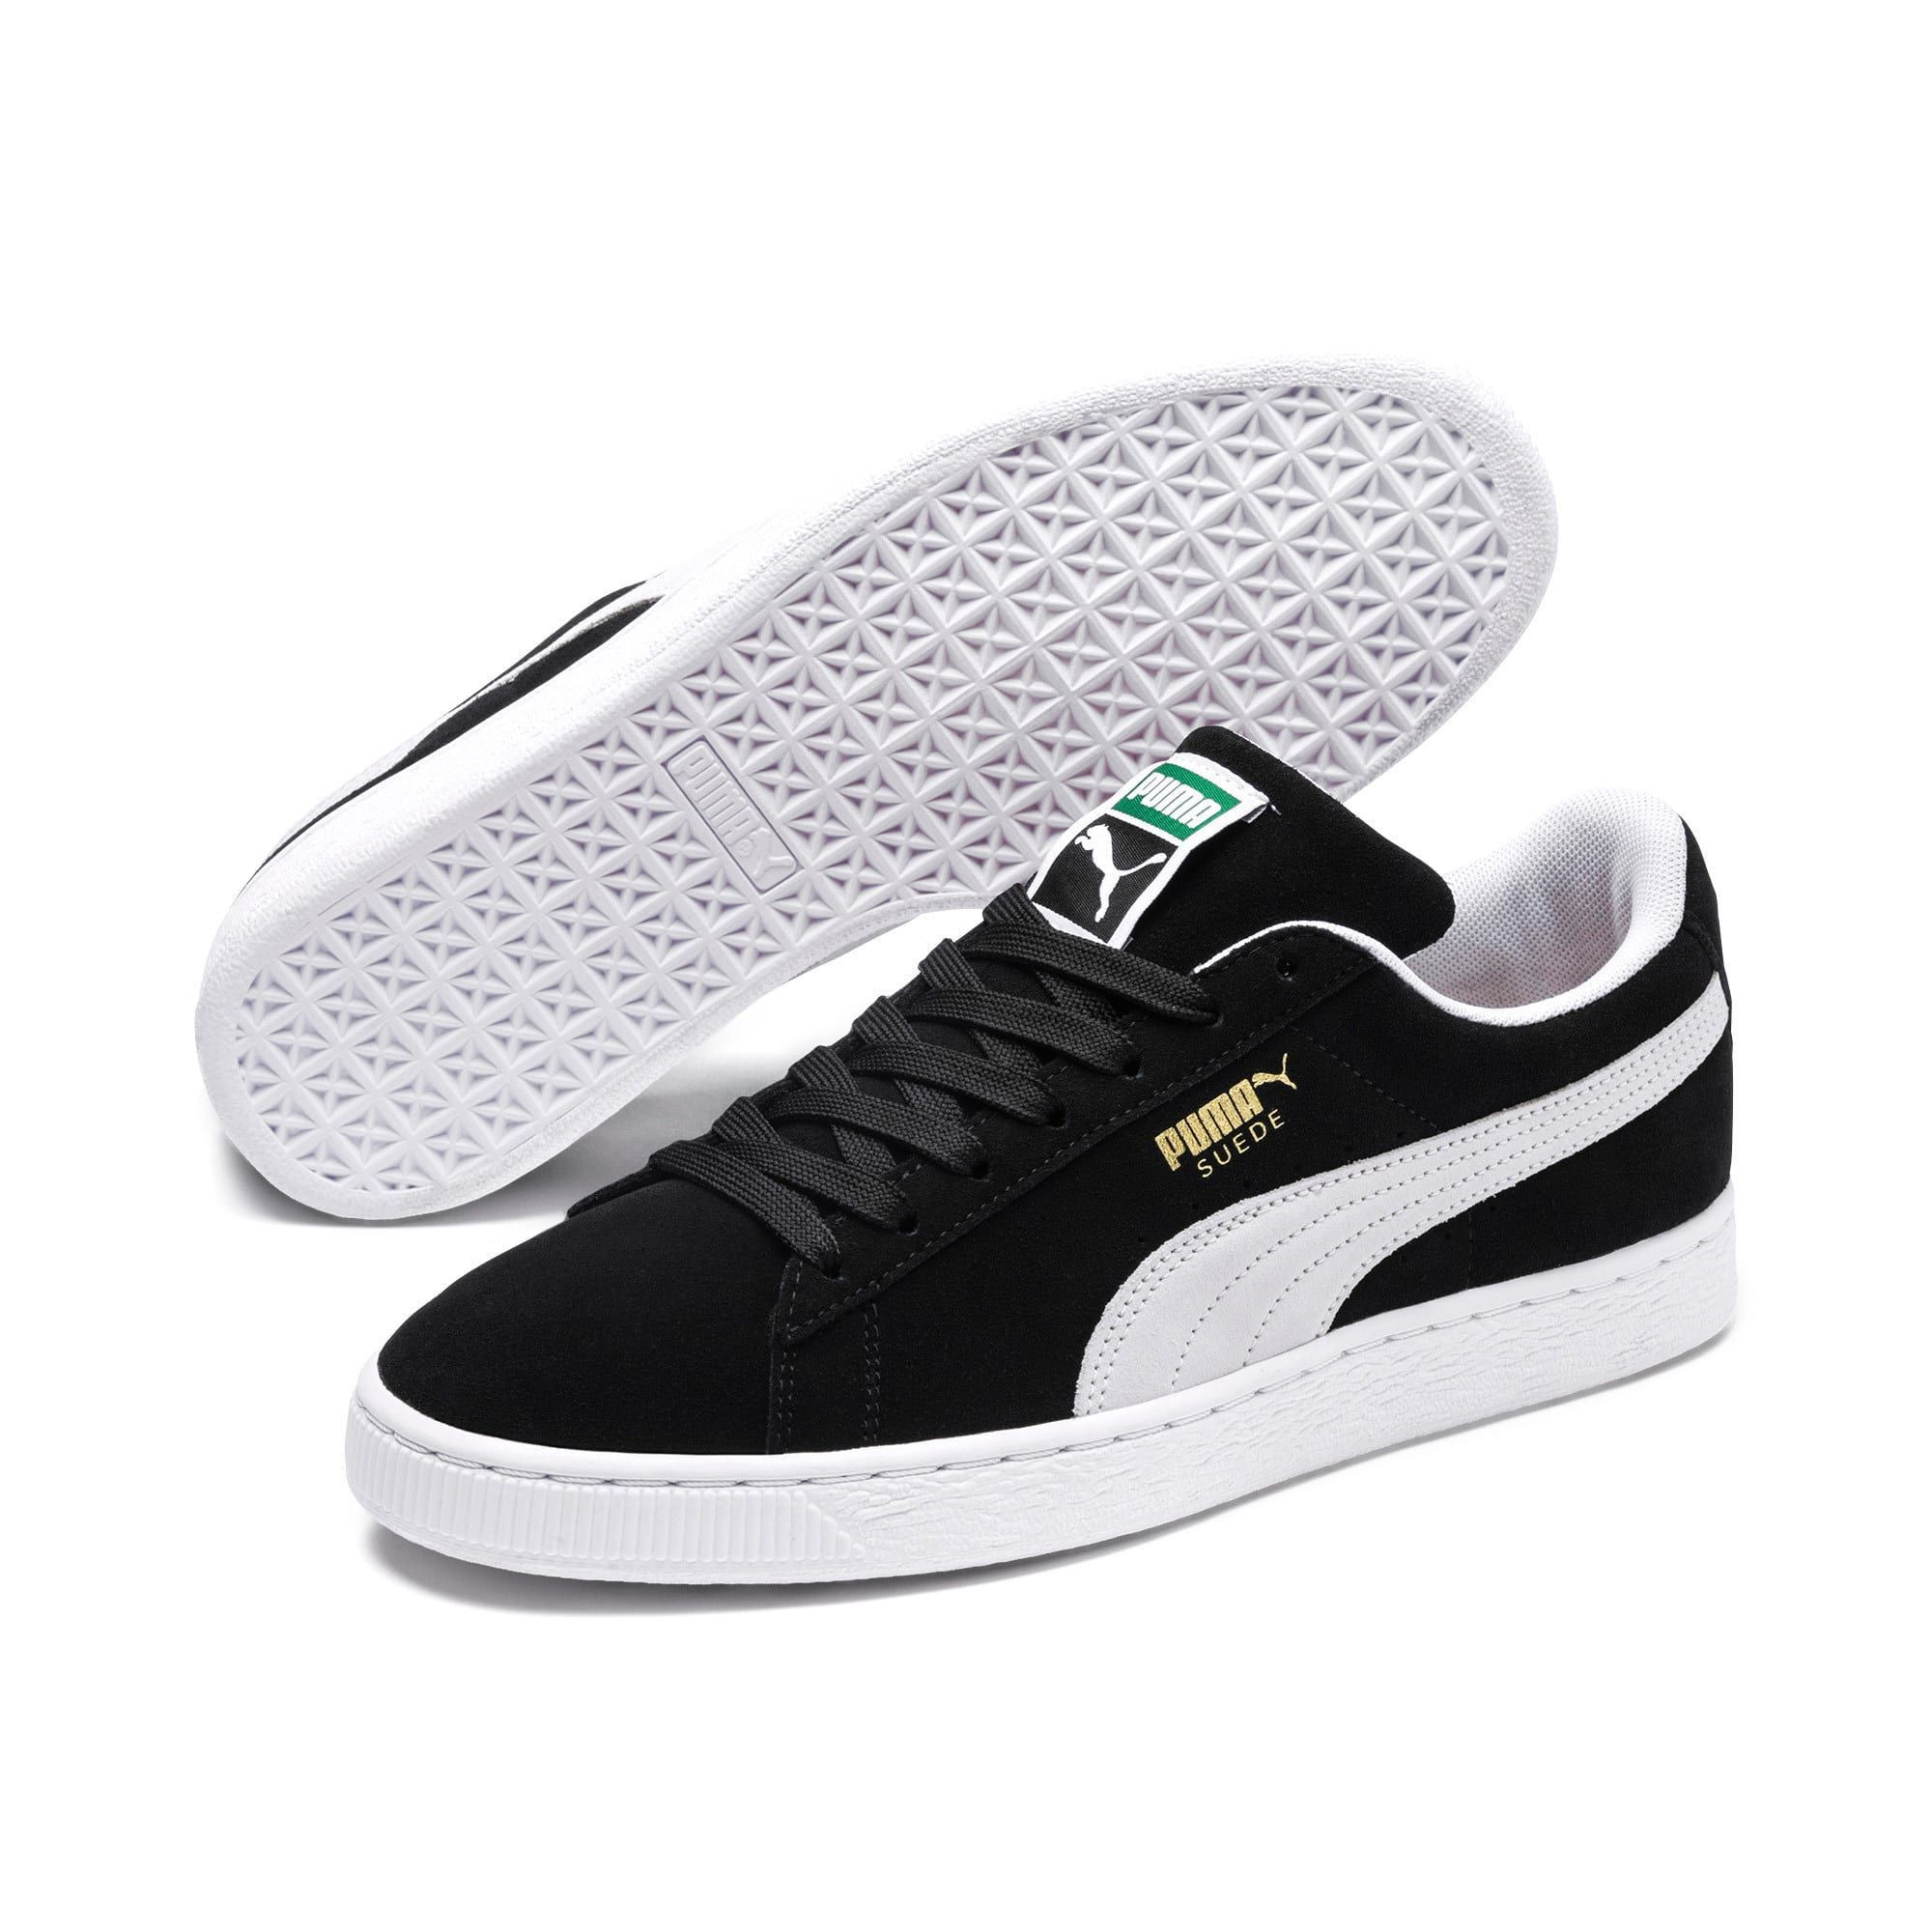 Makeup And Age Puma Suede Classic Sneakers Sneakers Men Fashion